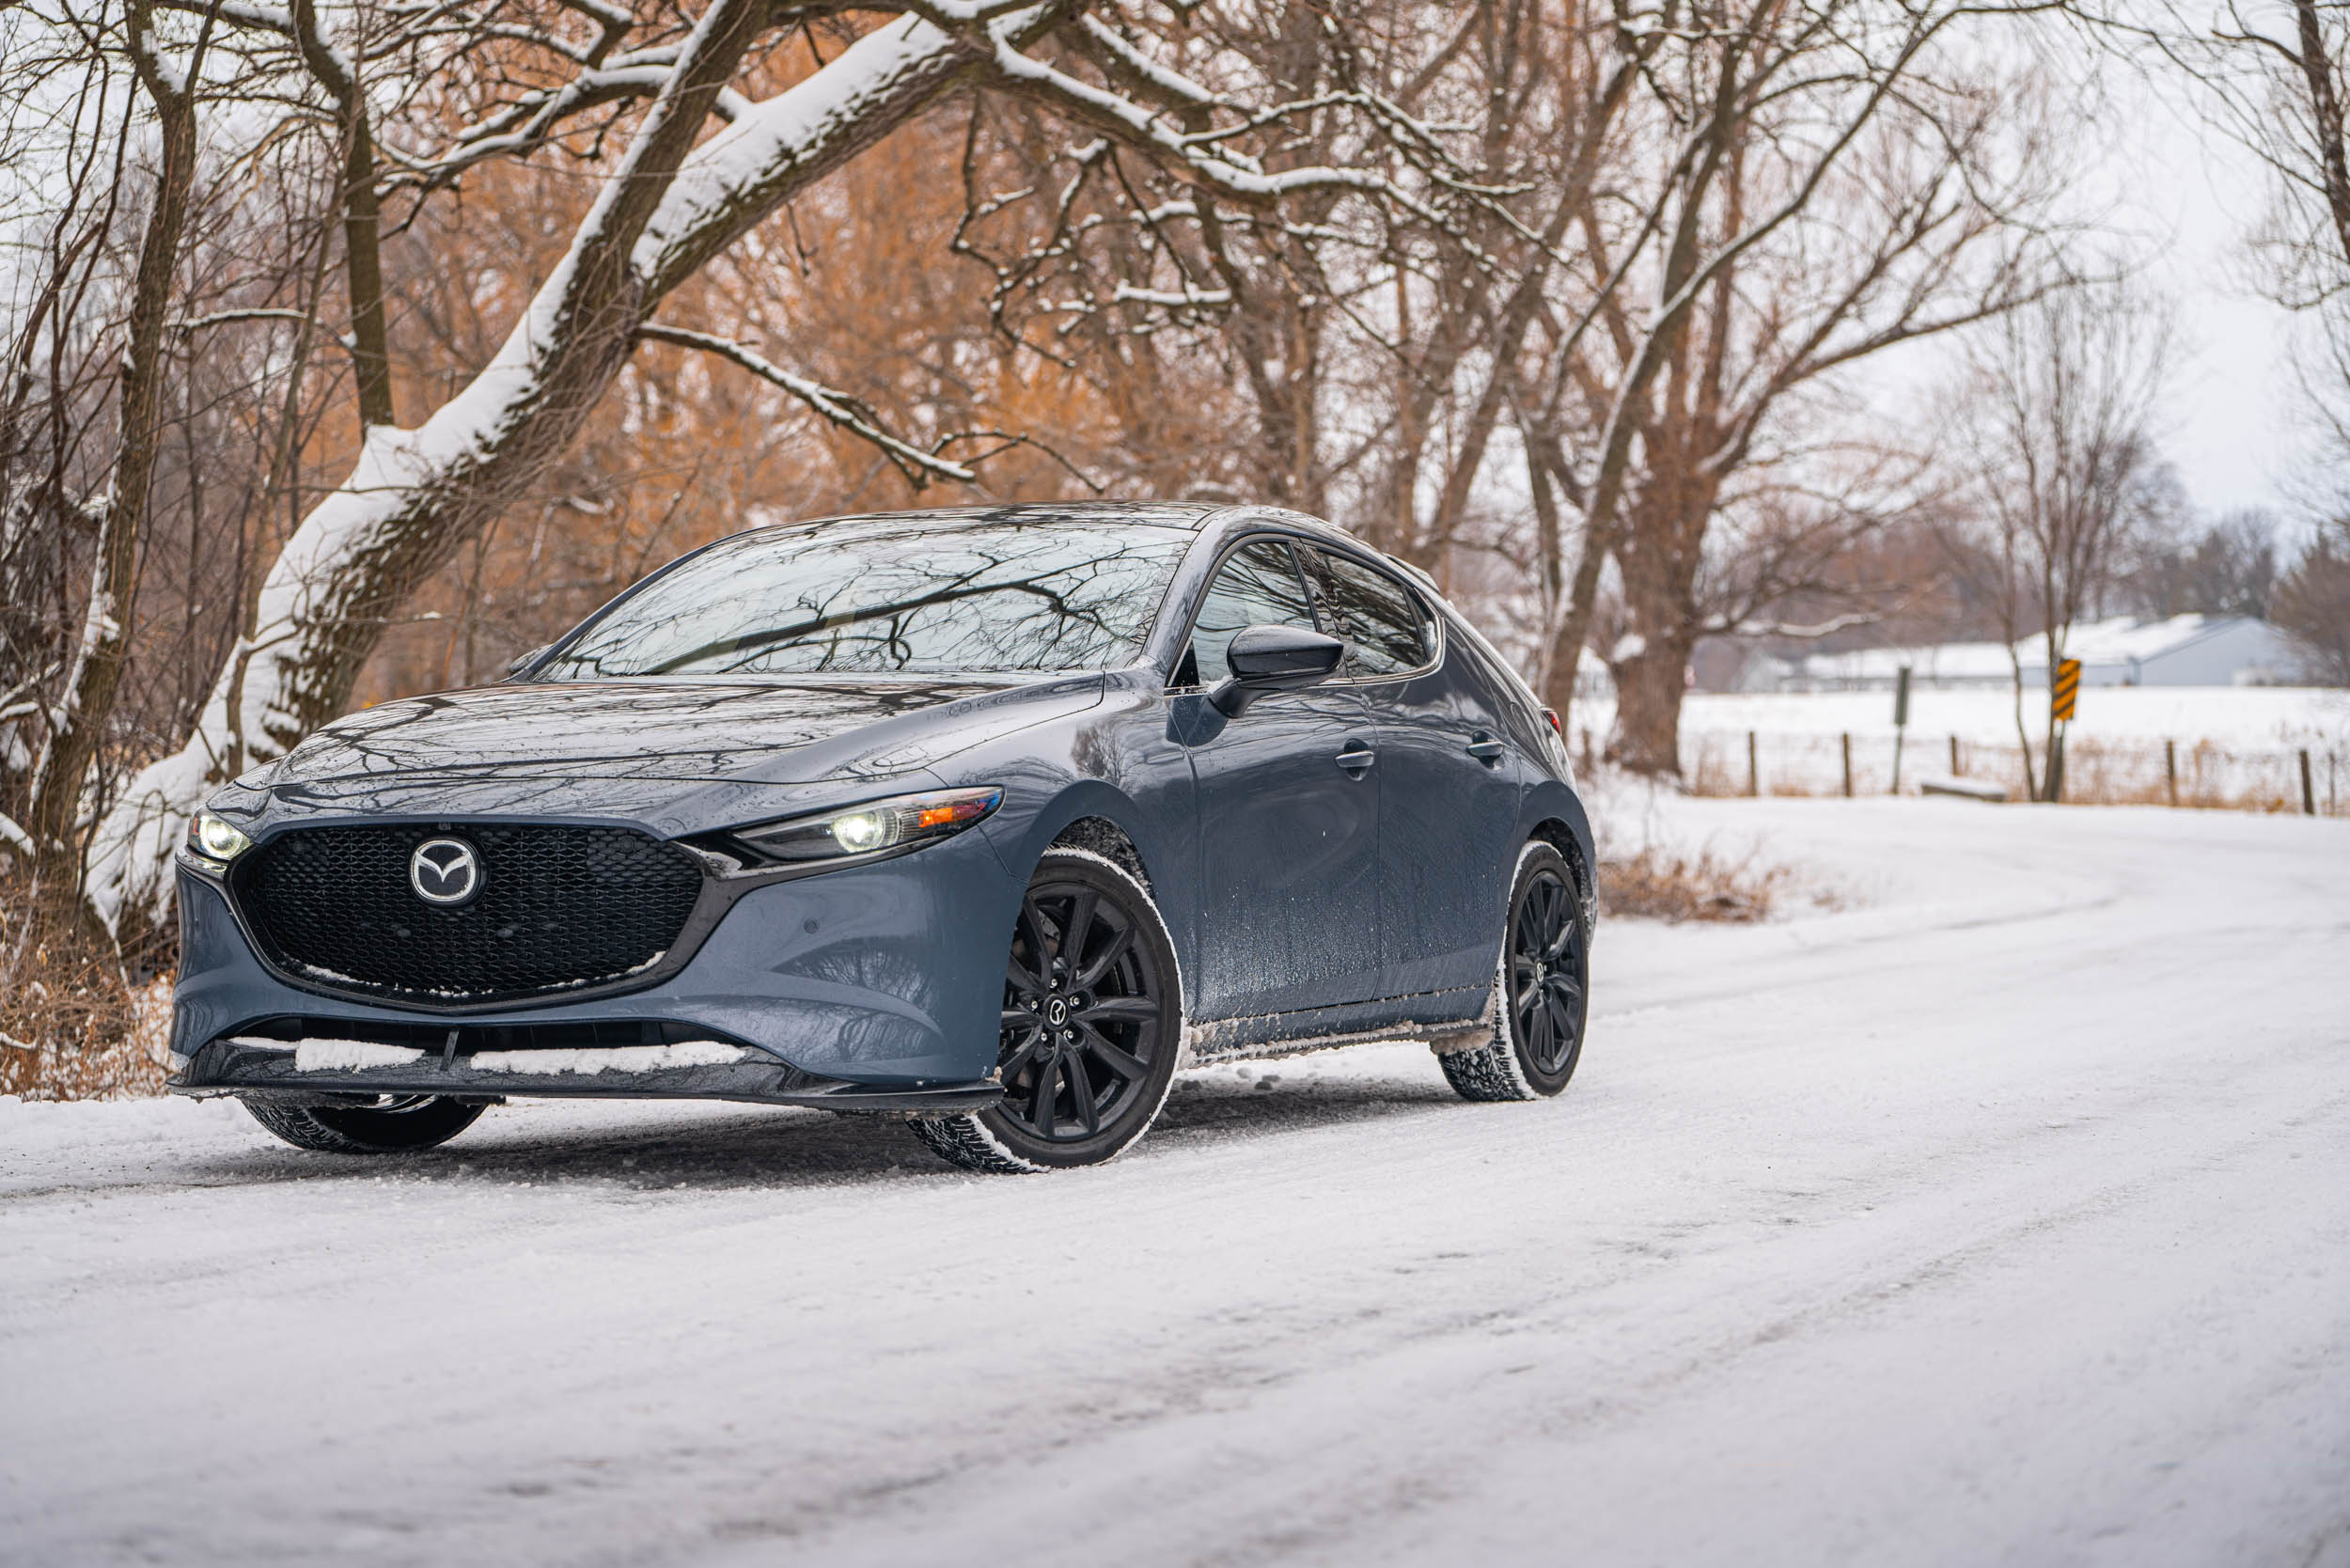 2021 Mazda3 2.5 Turbo AWD